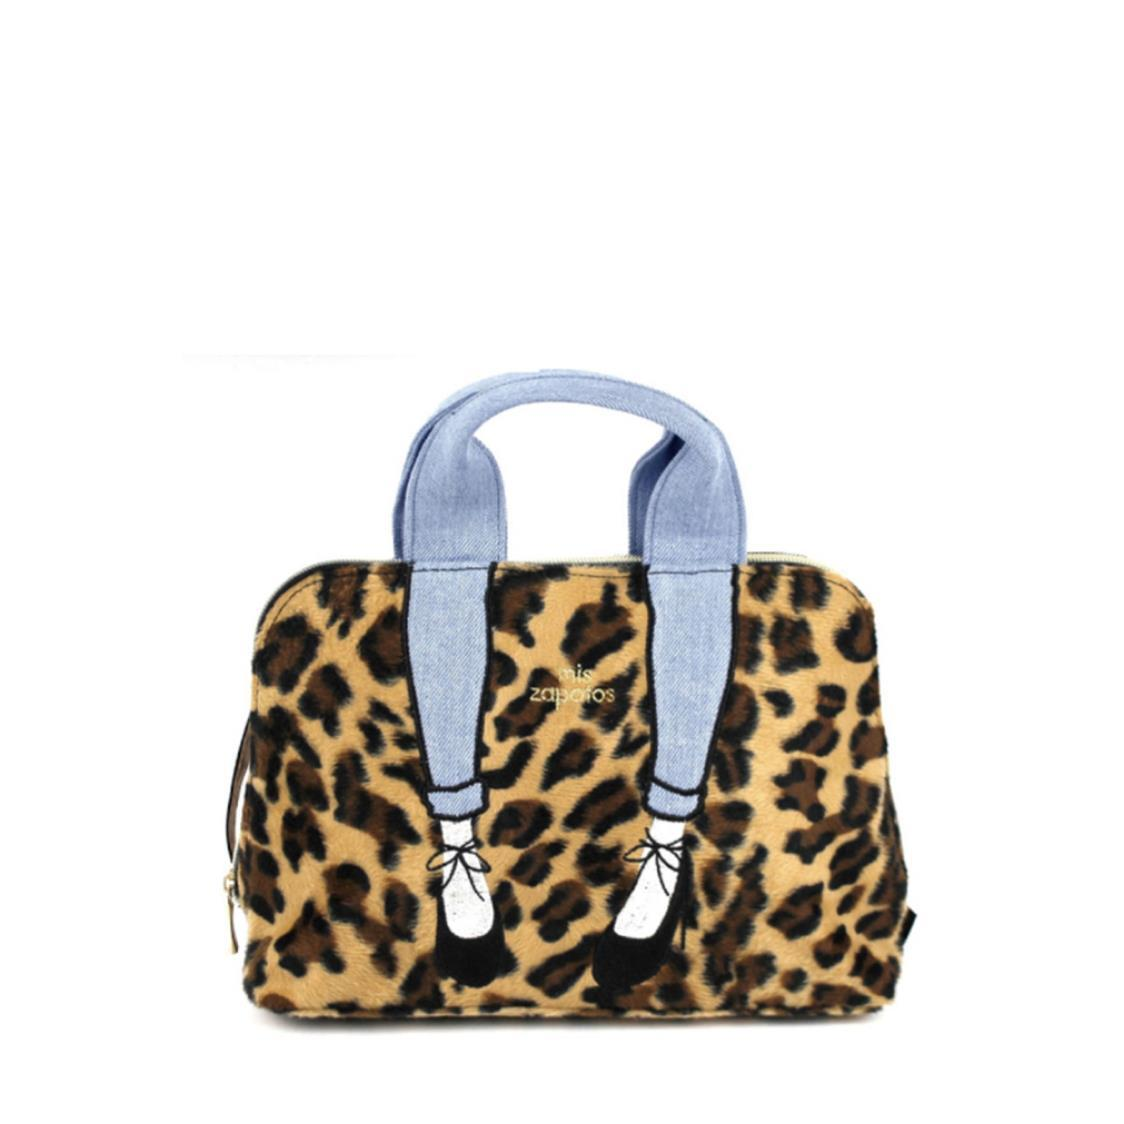 2-Way Use Jeans with High Heels Slingbag Leopard